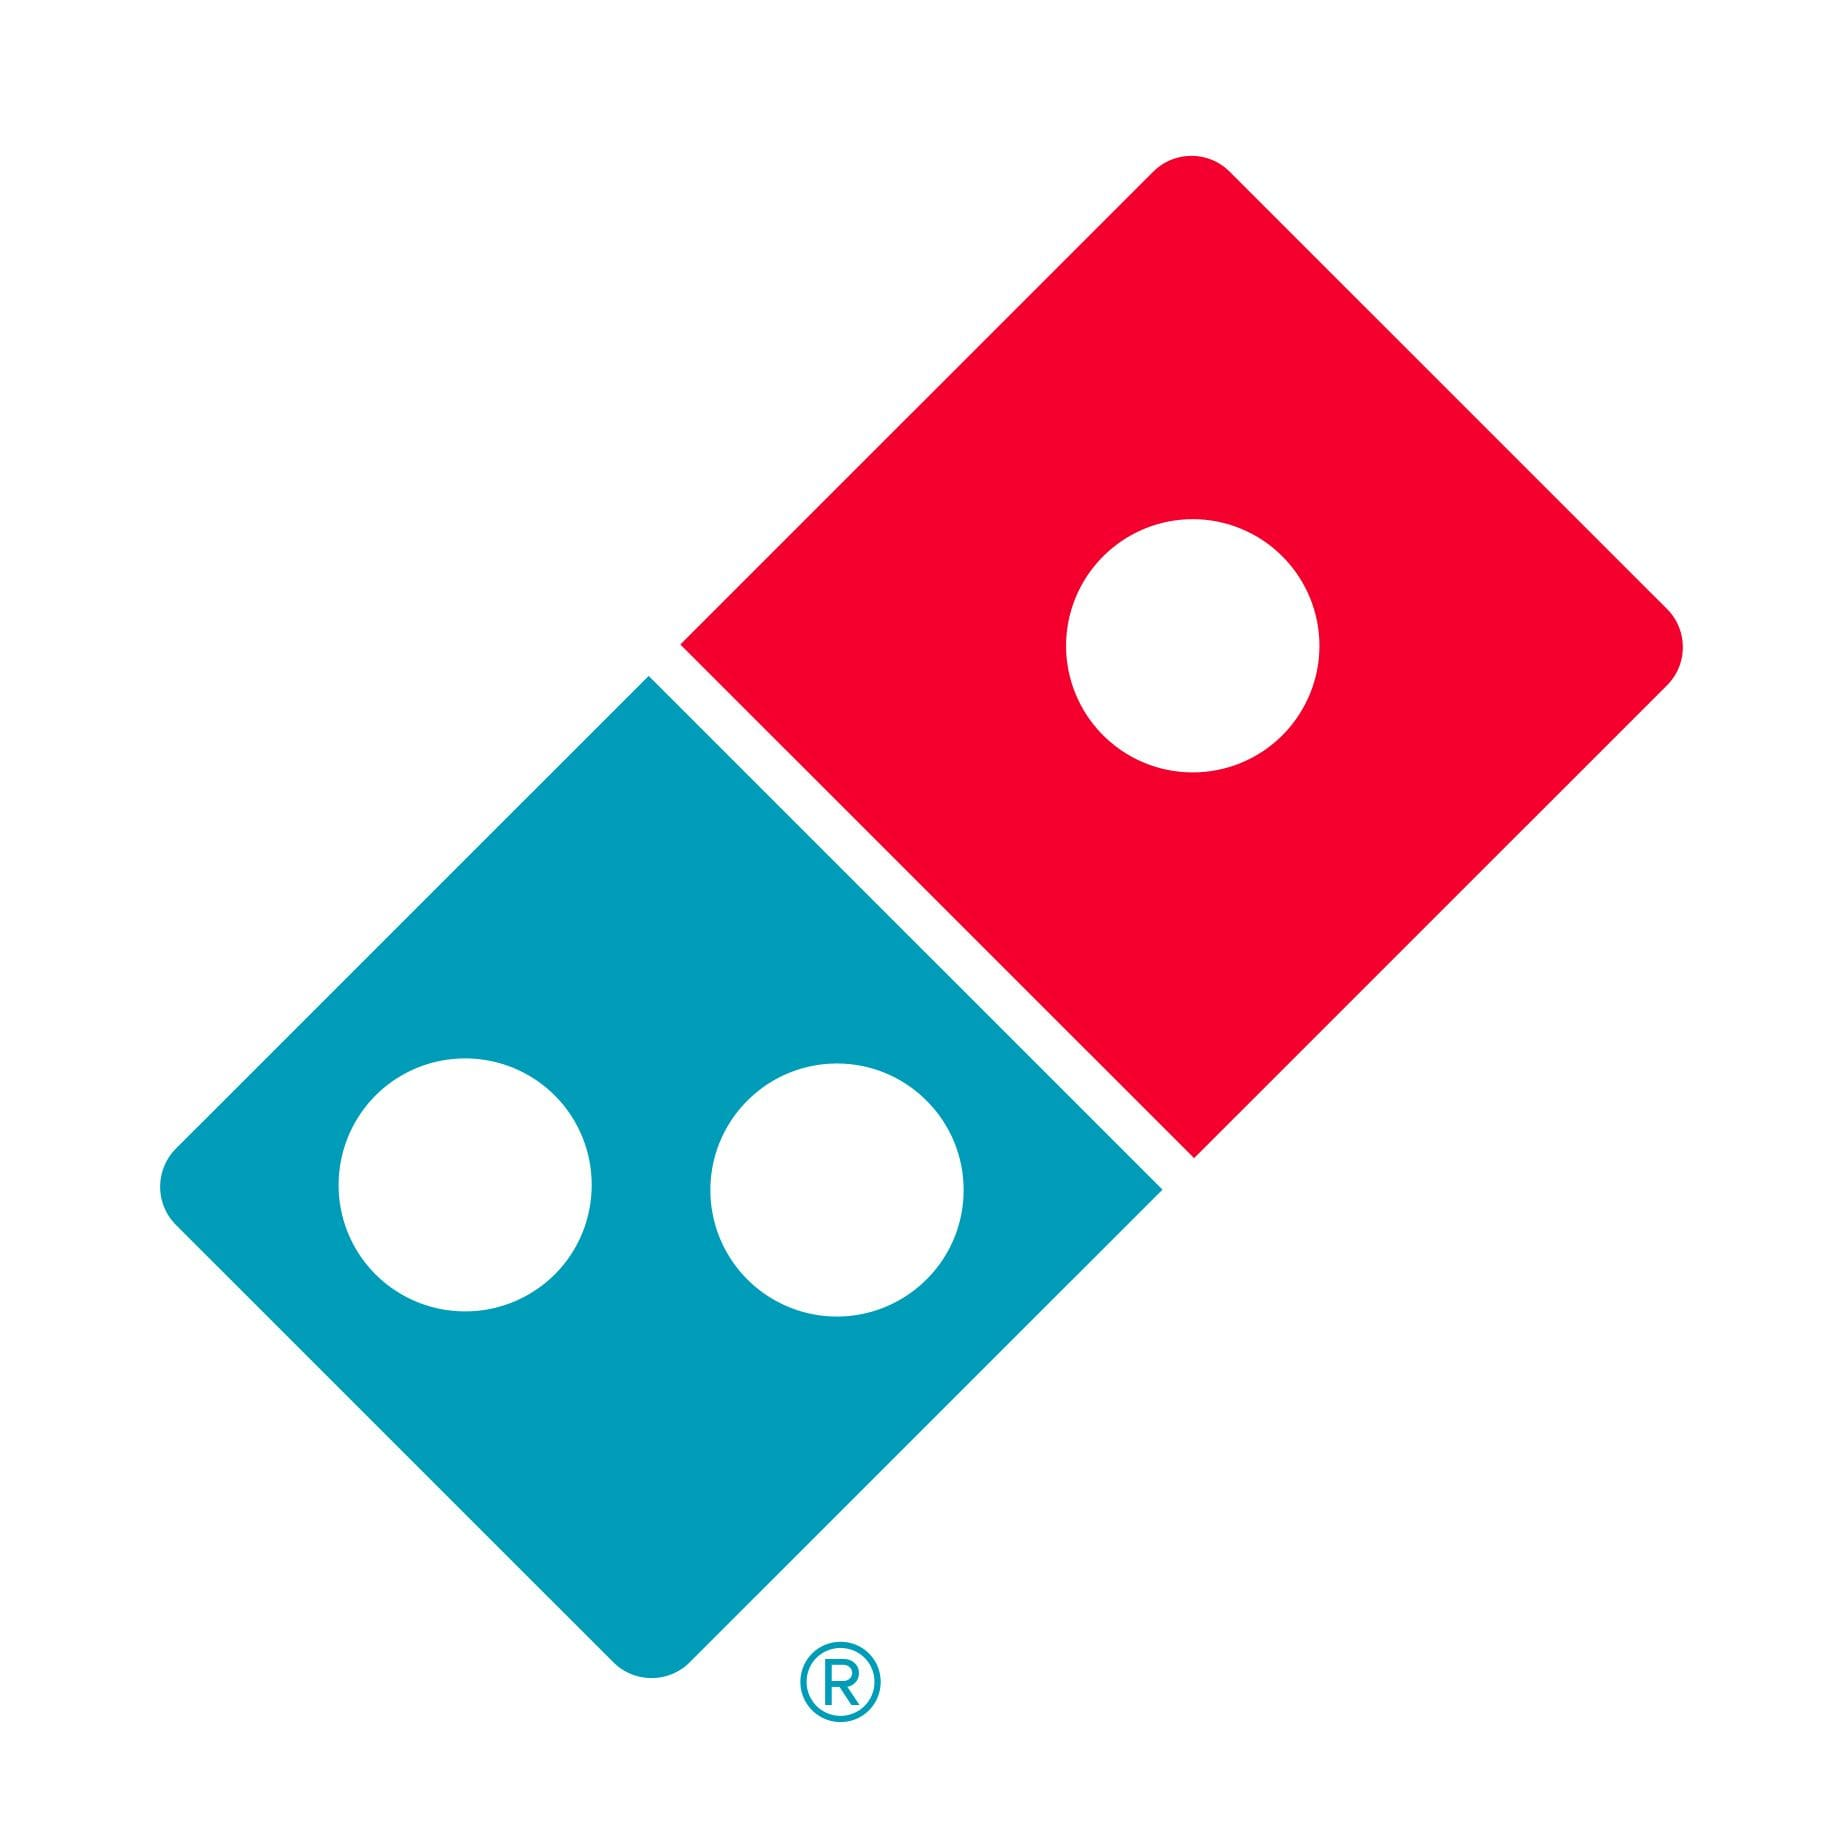 Domino's Pizza - Moss Vale, NSW - BRAND NEW STORE!